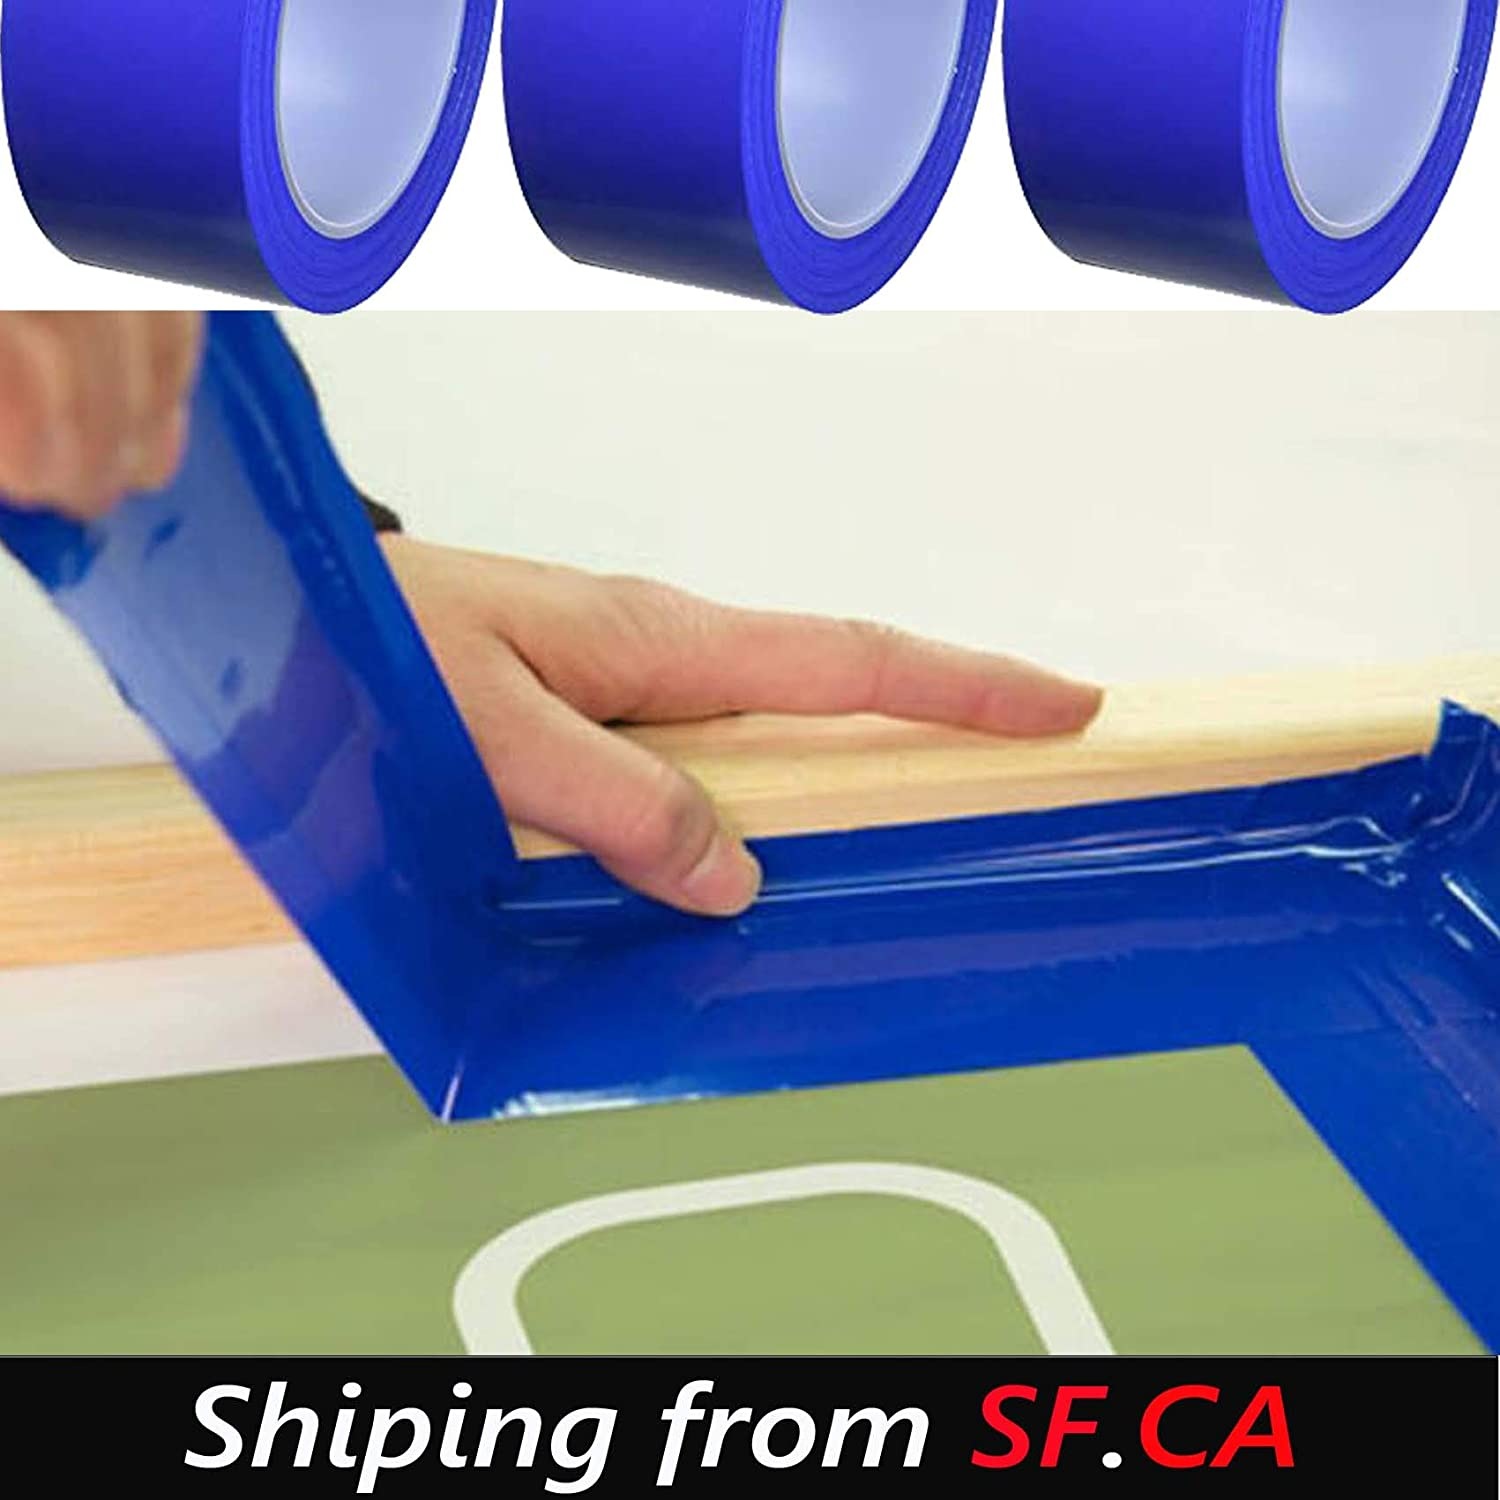 36yds ,6 Rolls,Silk Screen Printing Block-Out Blue Tape,Solvent and Water Resistant 3x108ft